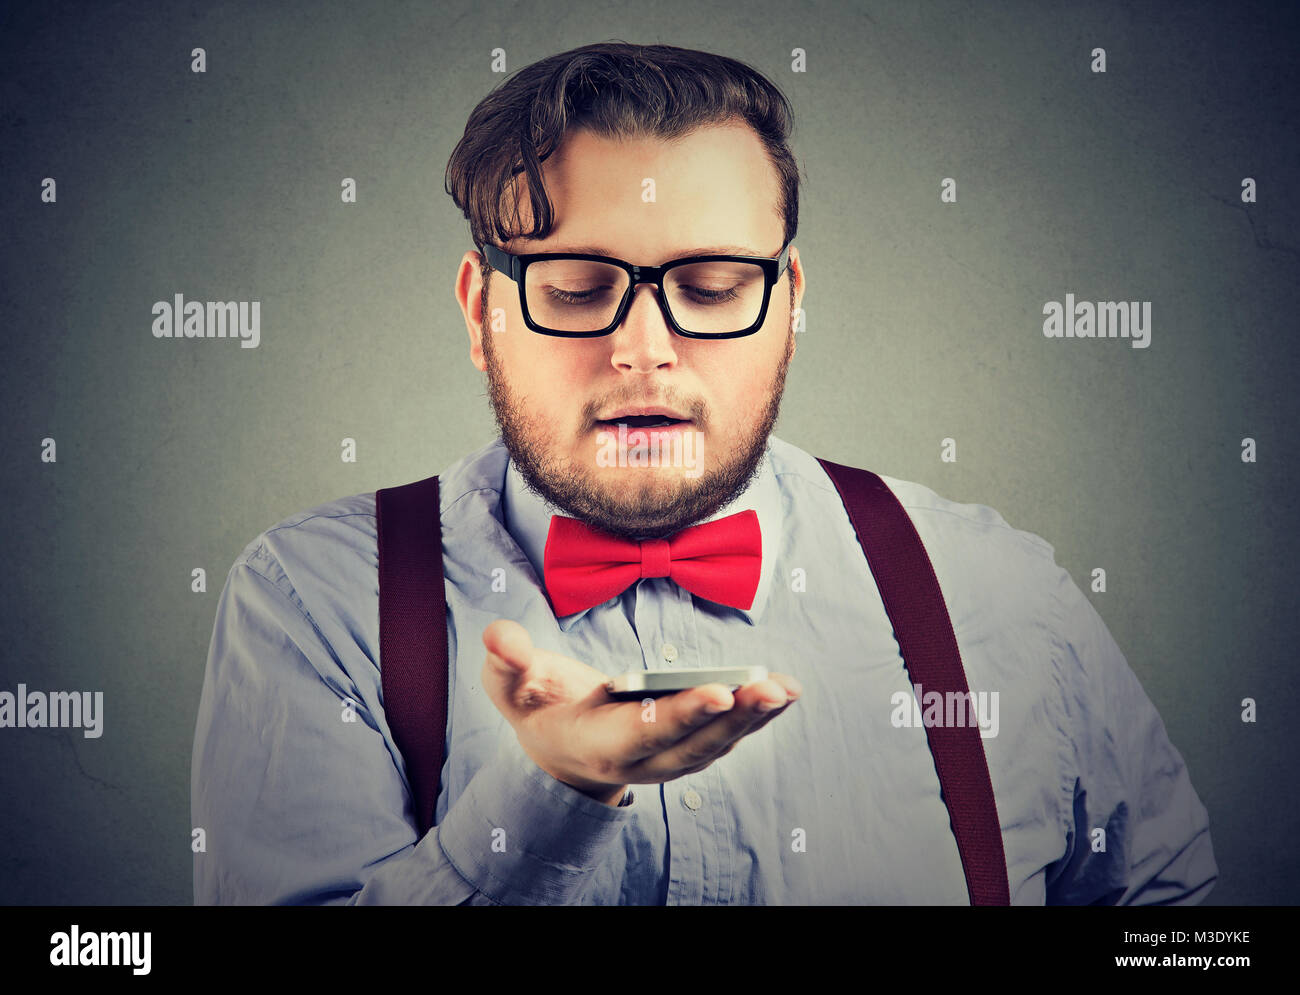 Chubby man holding smartphone and having AI conversation talking aloud. - Stock Image